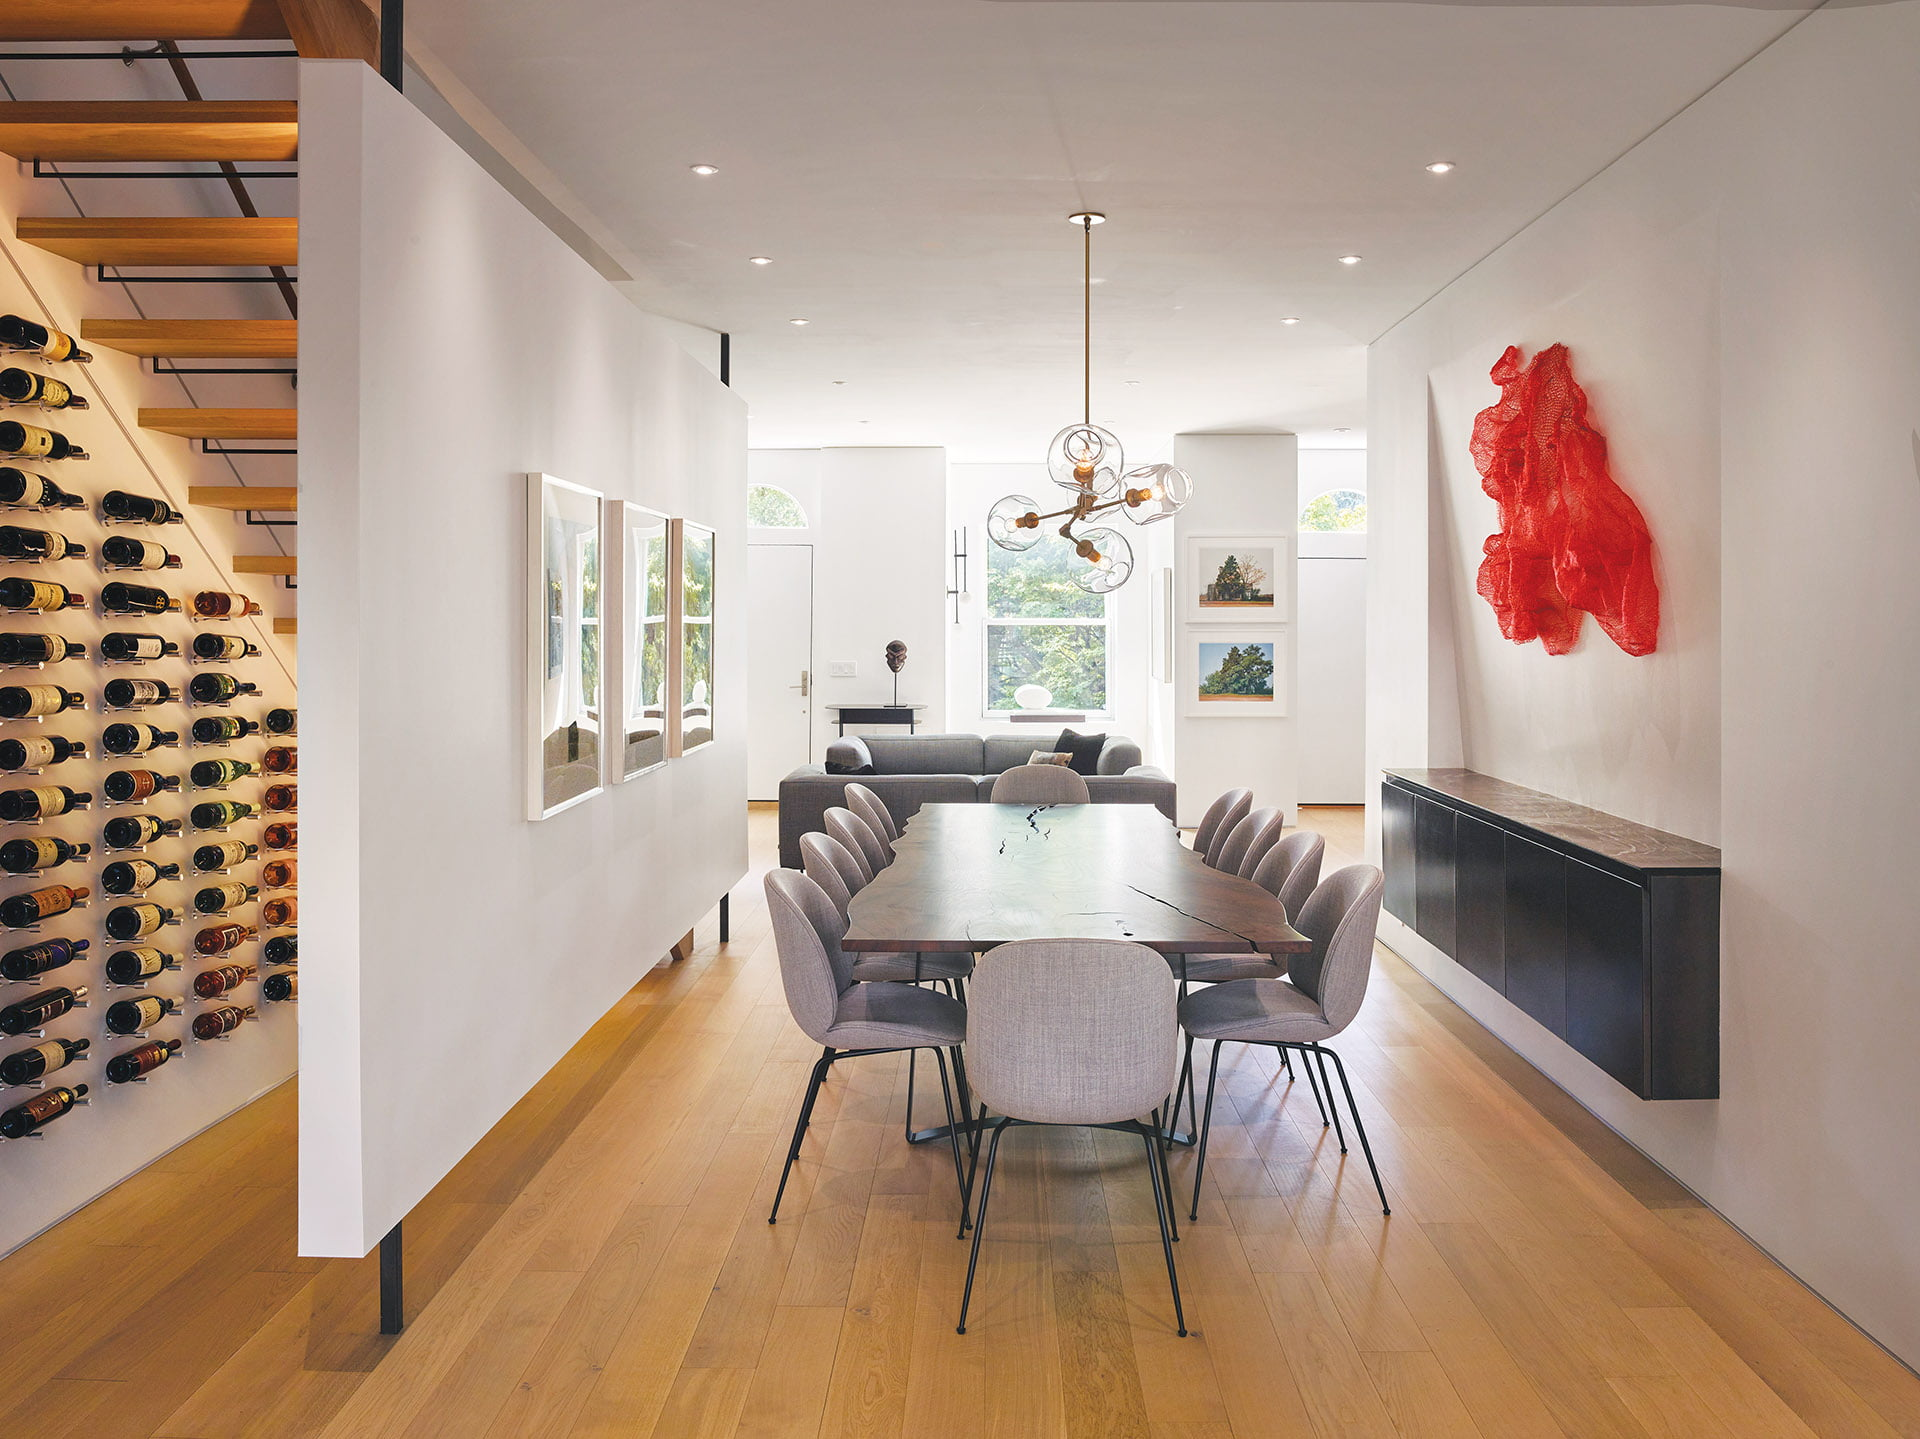 Custom dining table by Thos. Moser, floating partition conceals staircase and a wine wall.